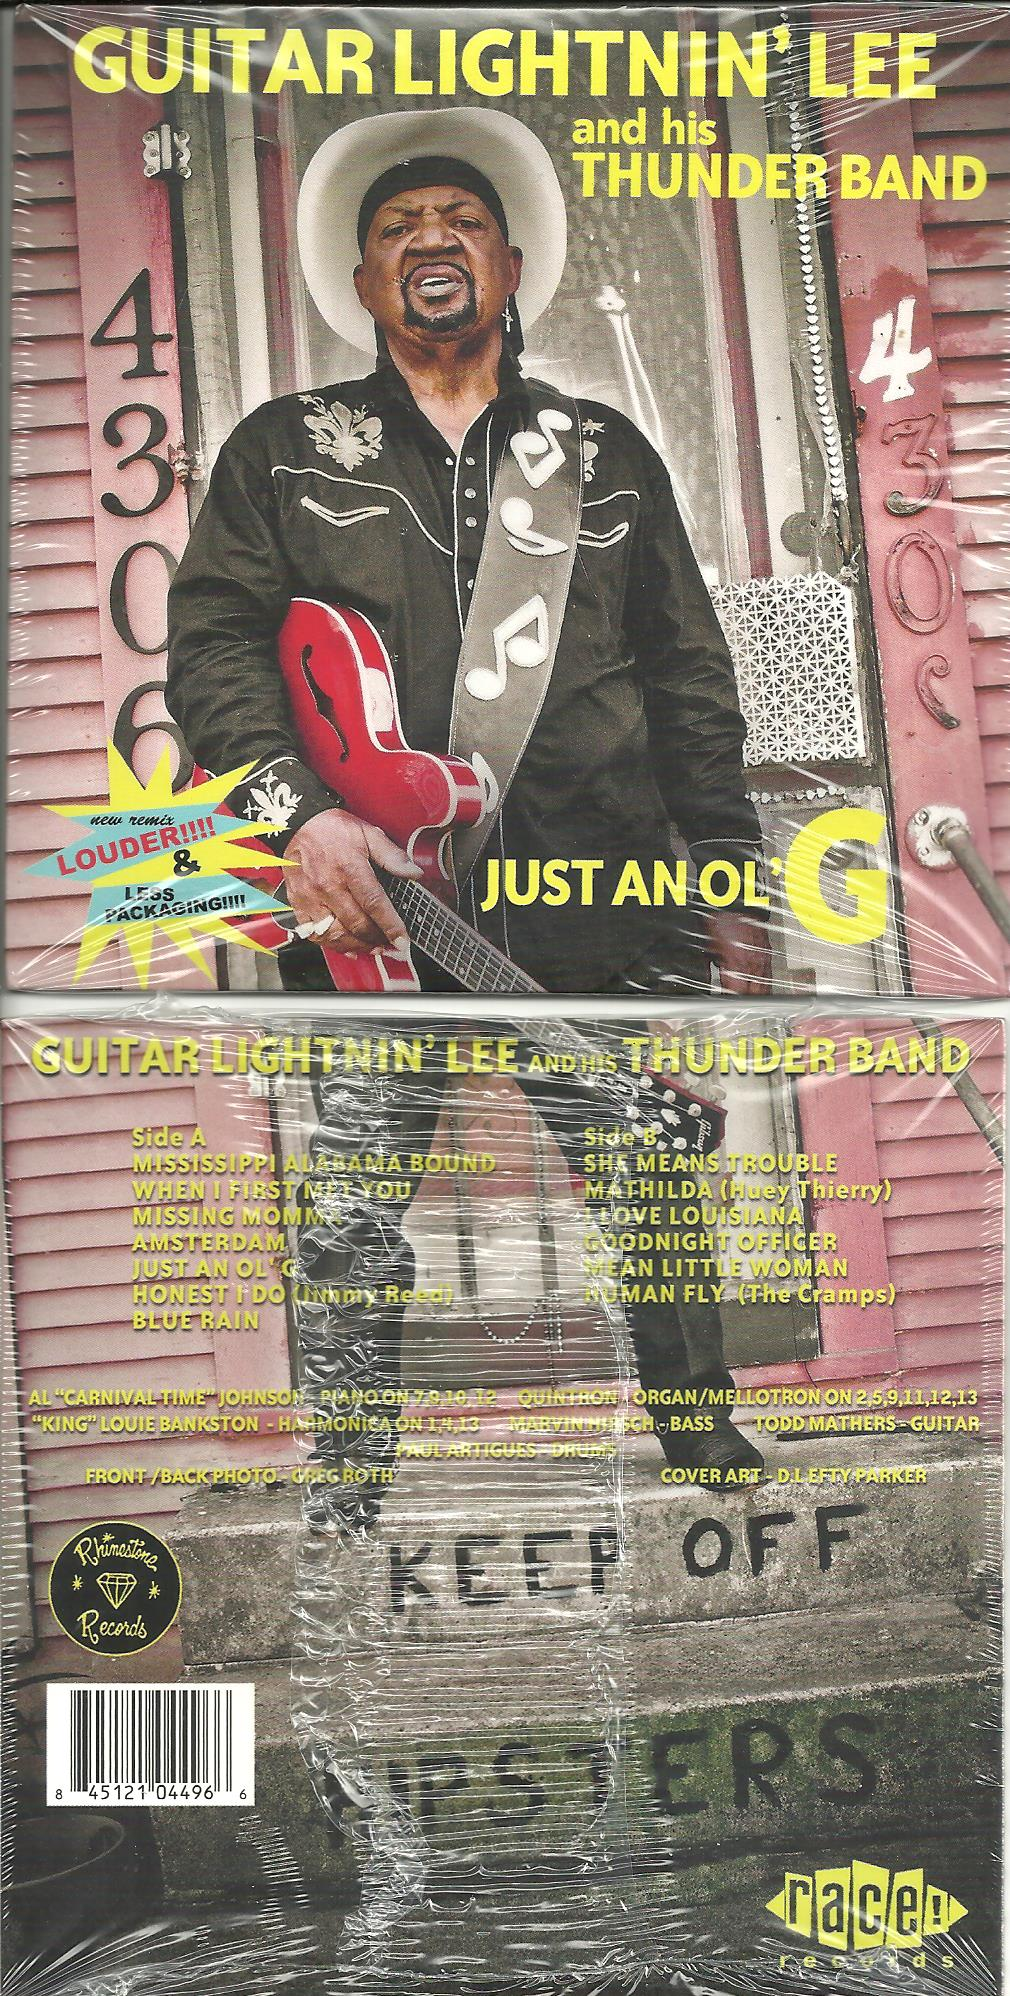 Guitar Lightnin' Lee - Just An Ol' G cd (Rhinestone/Race)